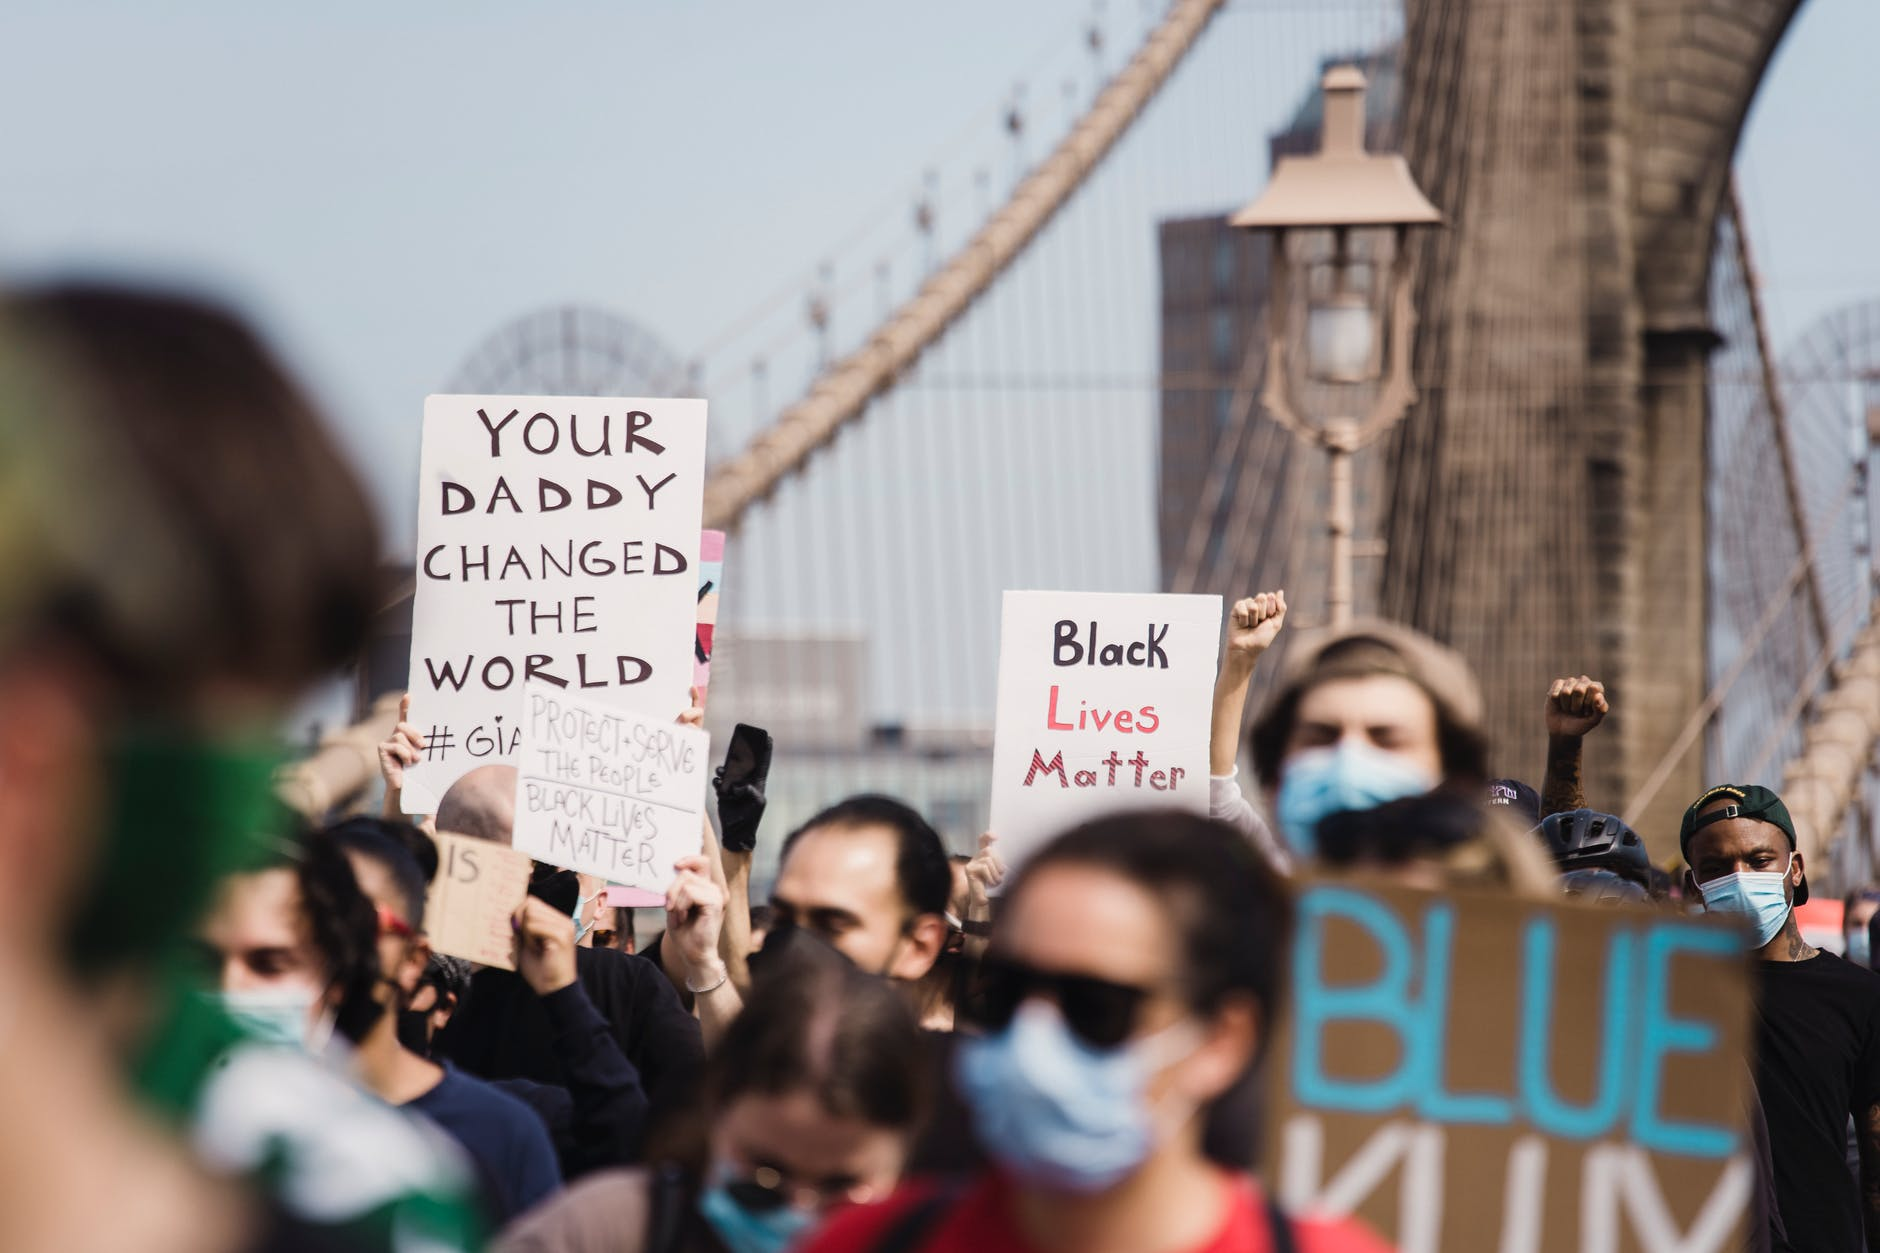 Joining the dots: COVID, Men and Black Lives Matter